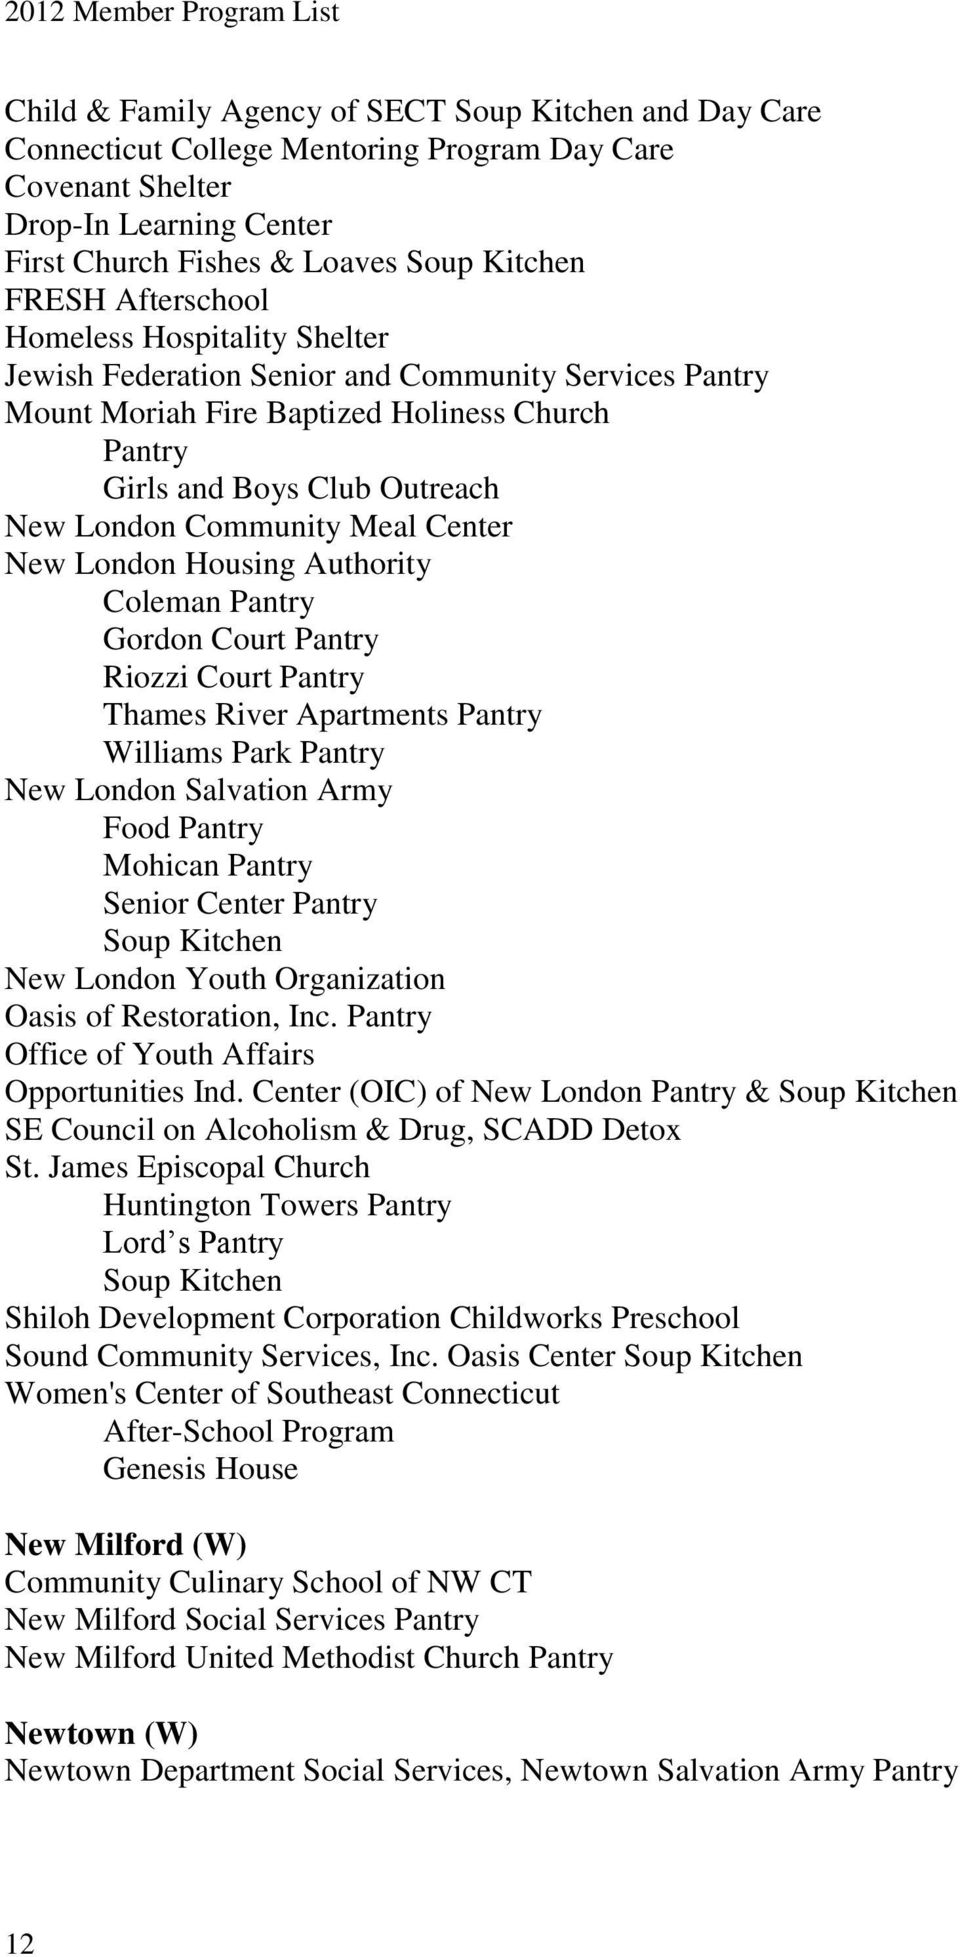 Meal Center New London Housing Authority Coleman Pantry Gordon Court Pantry Riozzi Court Pantry Thames River Apartments Pantry Williams Park Pantry New London Salvation Army Food Pantry Mohican